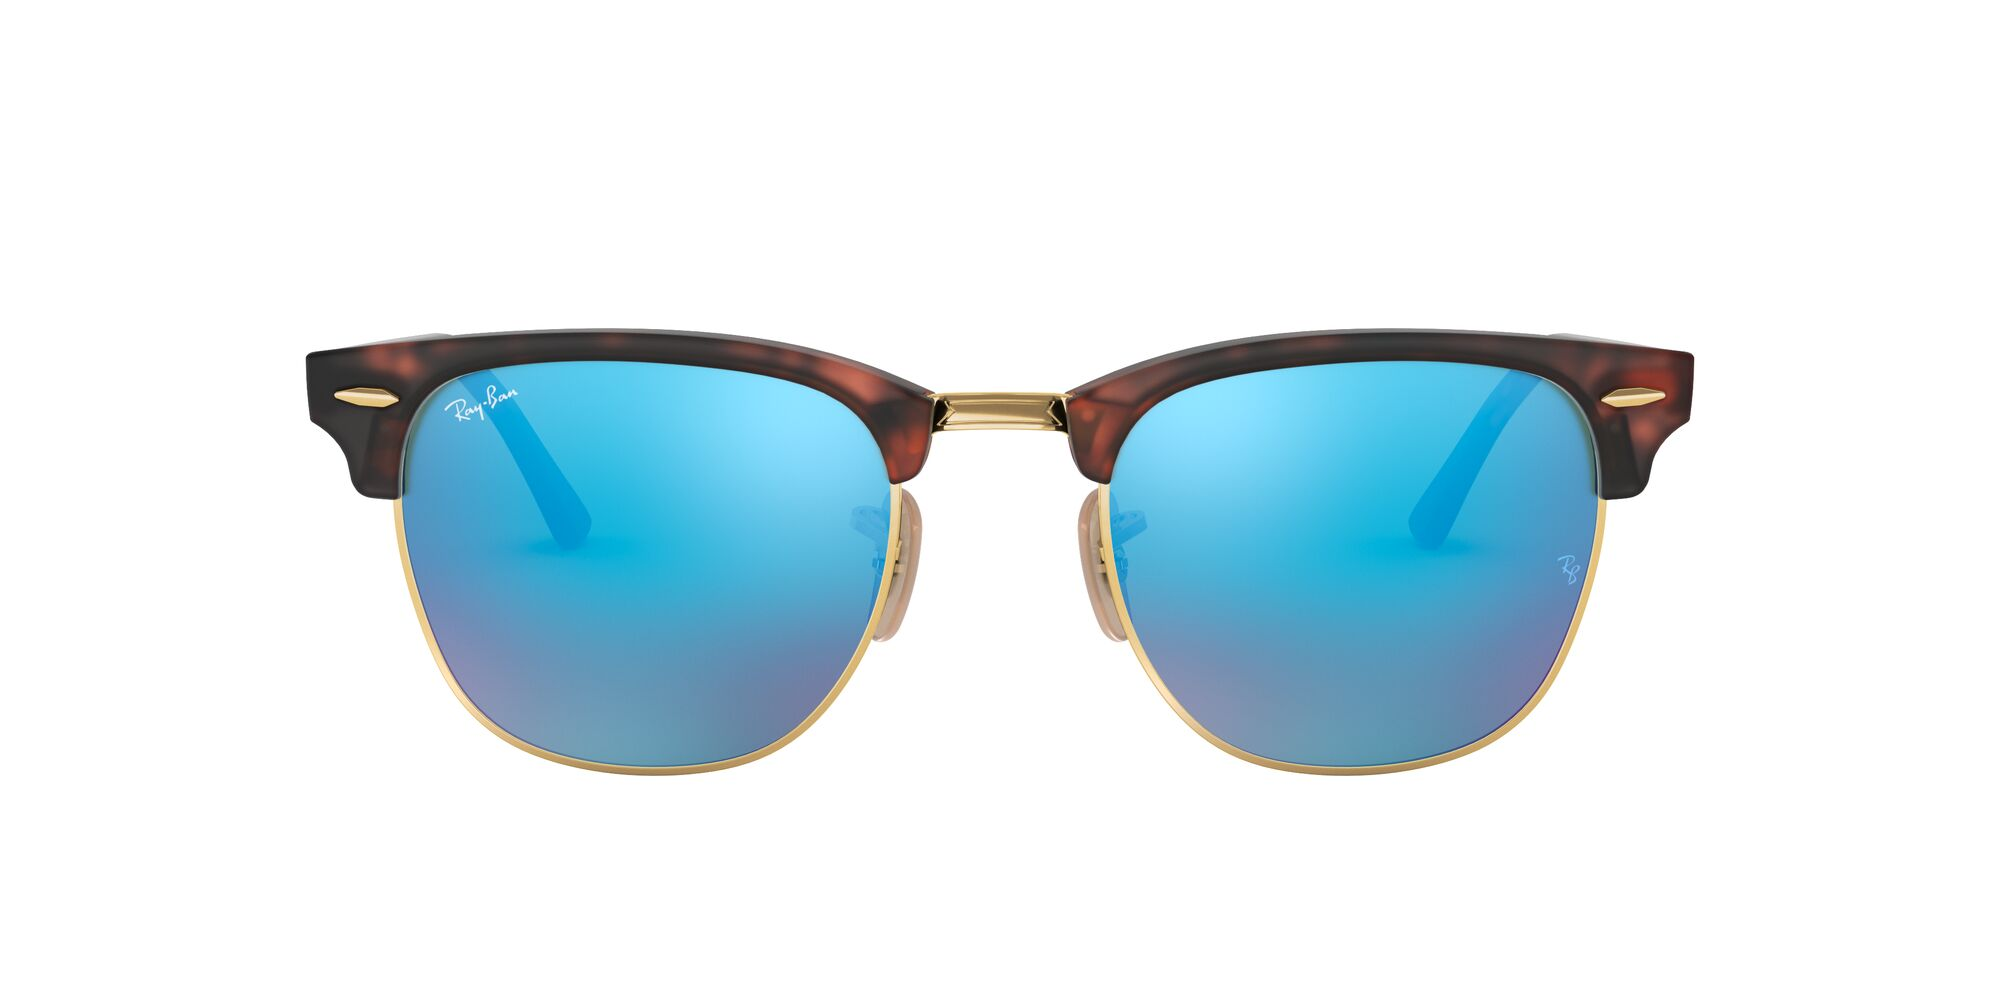 Front Ray-Ban Ray-Ban 0RB3016 114517 49/21 Goud/Grijs